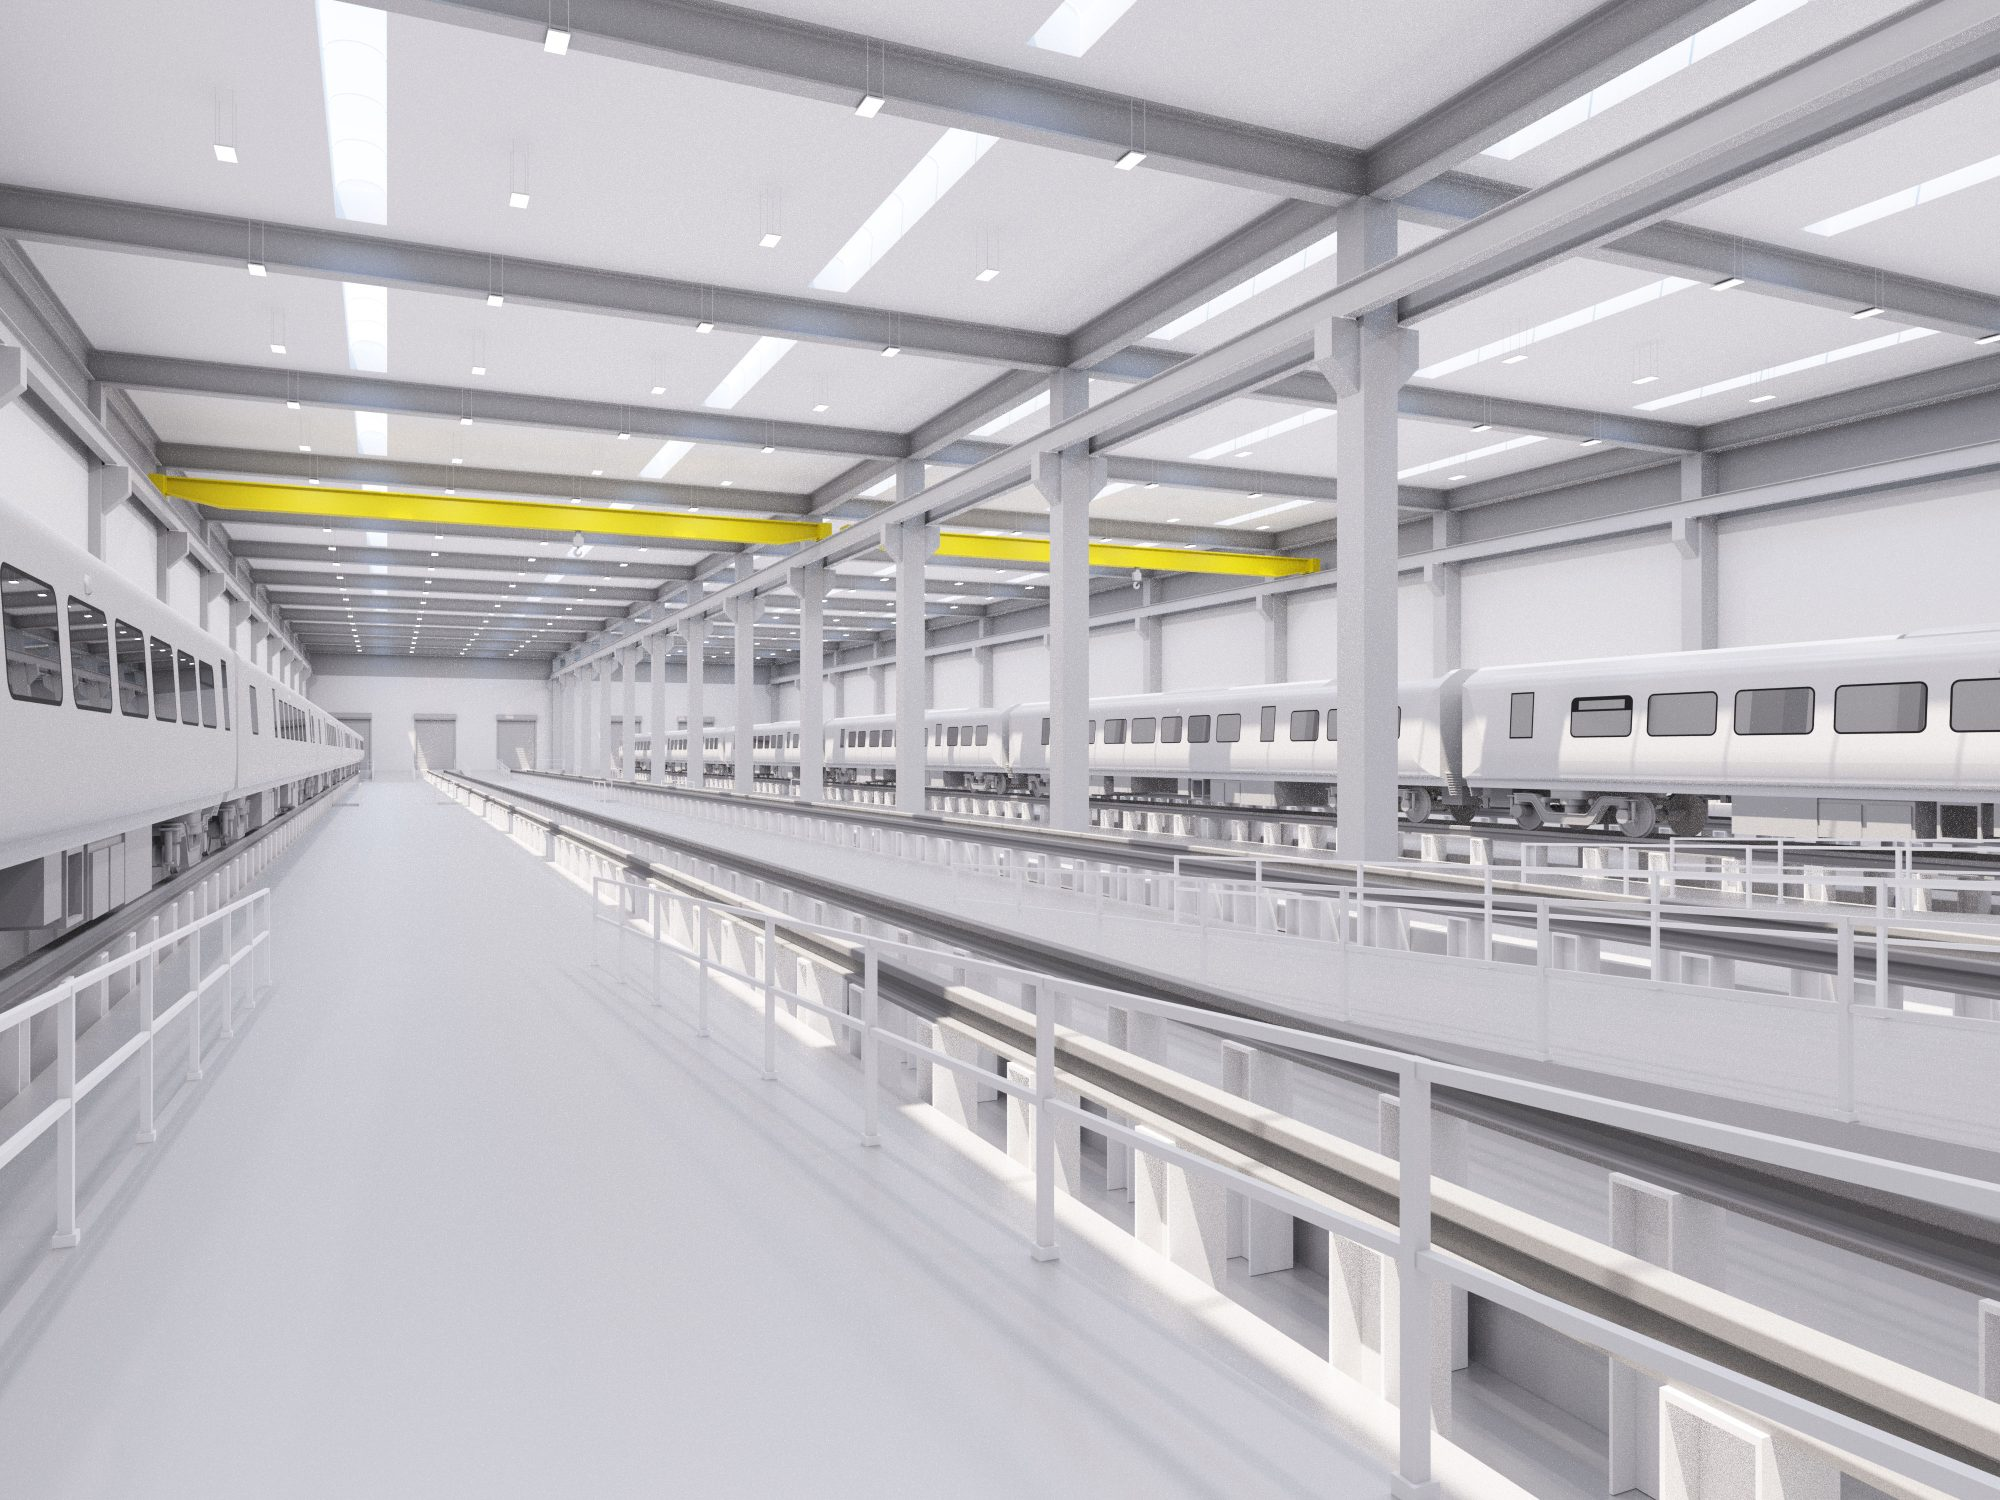 An artist's impression of Siemens' train factory. Photo: Siemens.